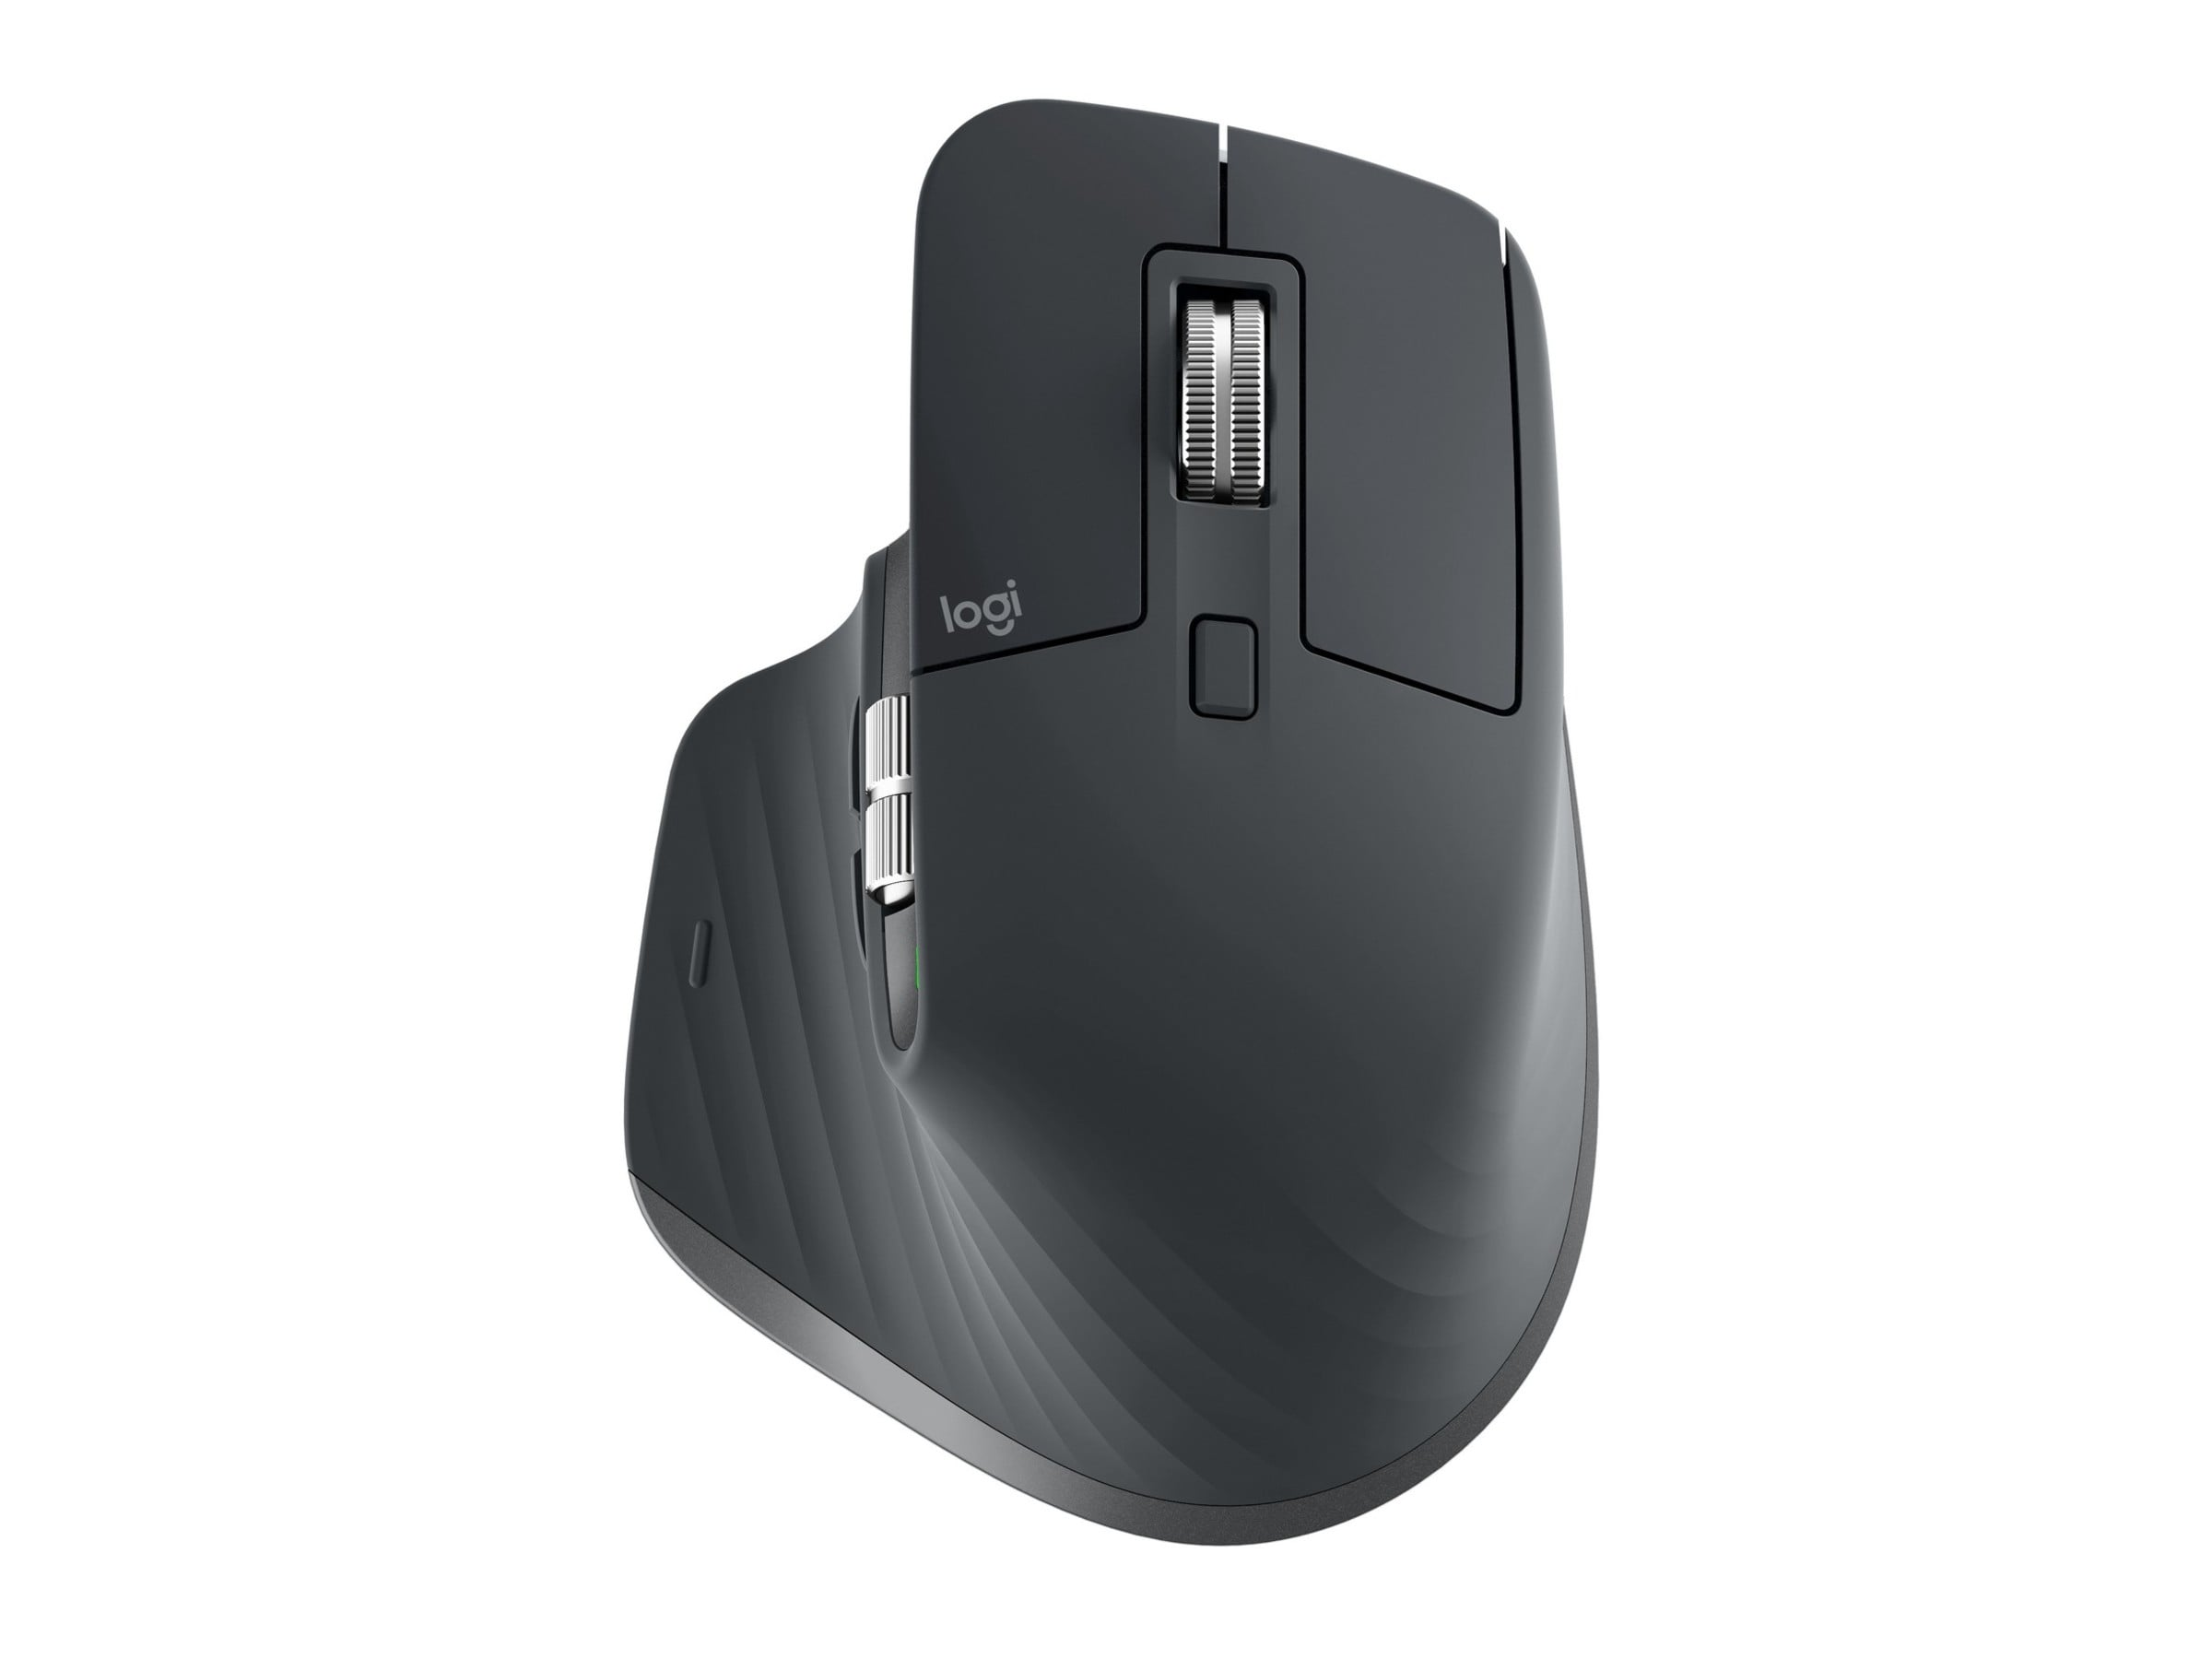 Logitech - MX Master 3 Advanced Wireless Mouse Black